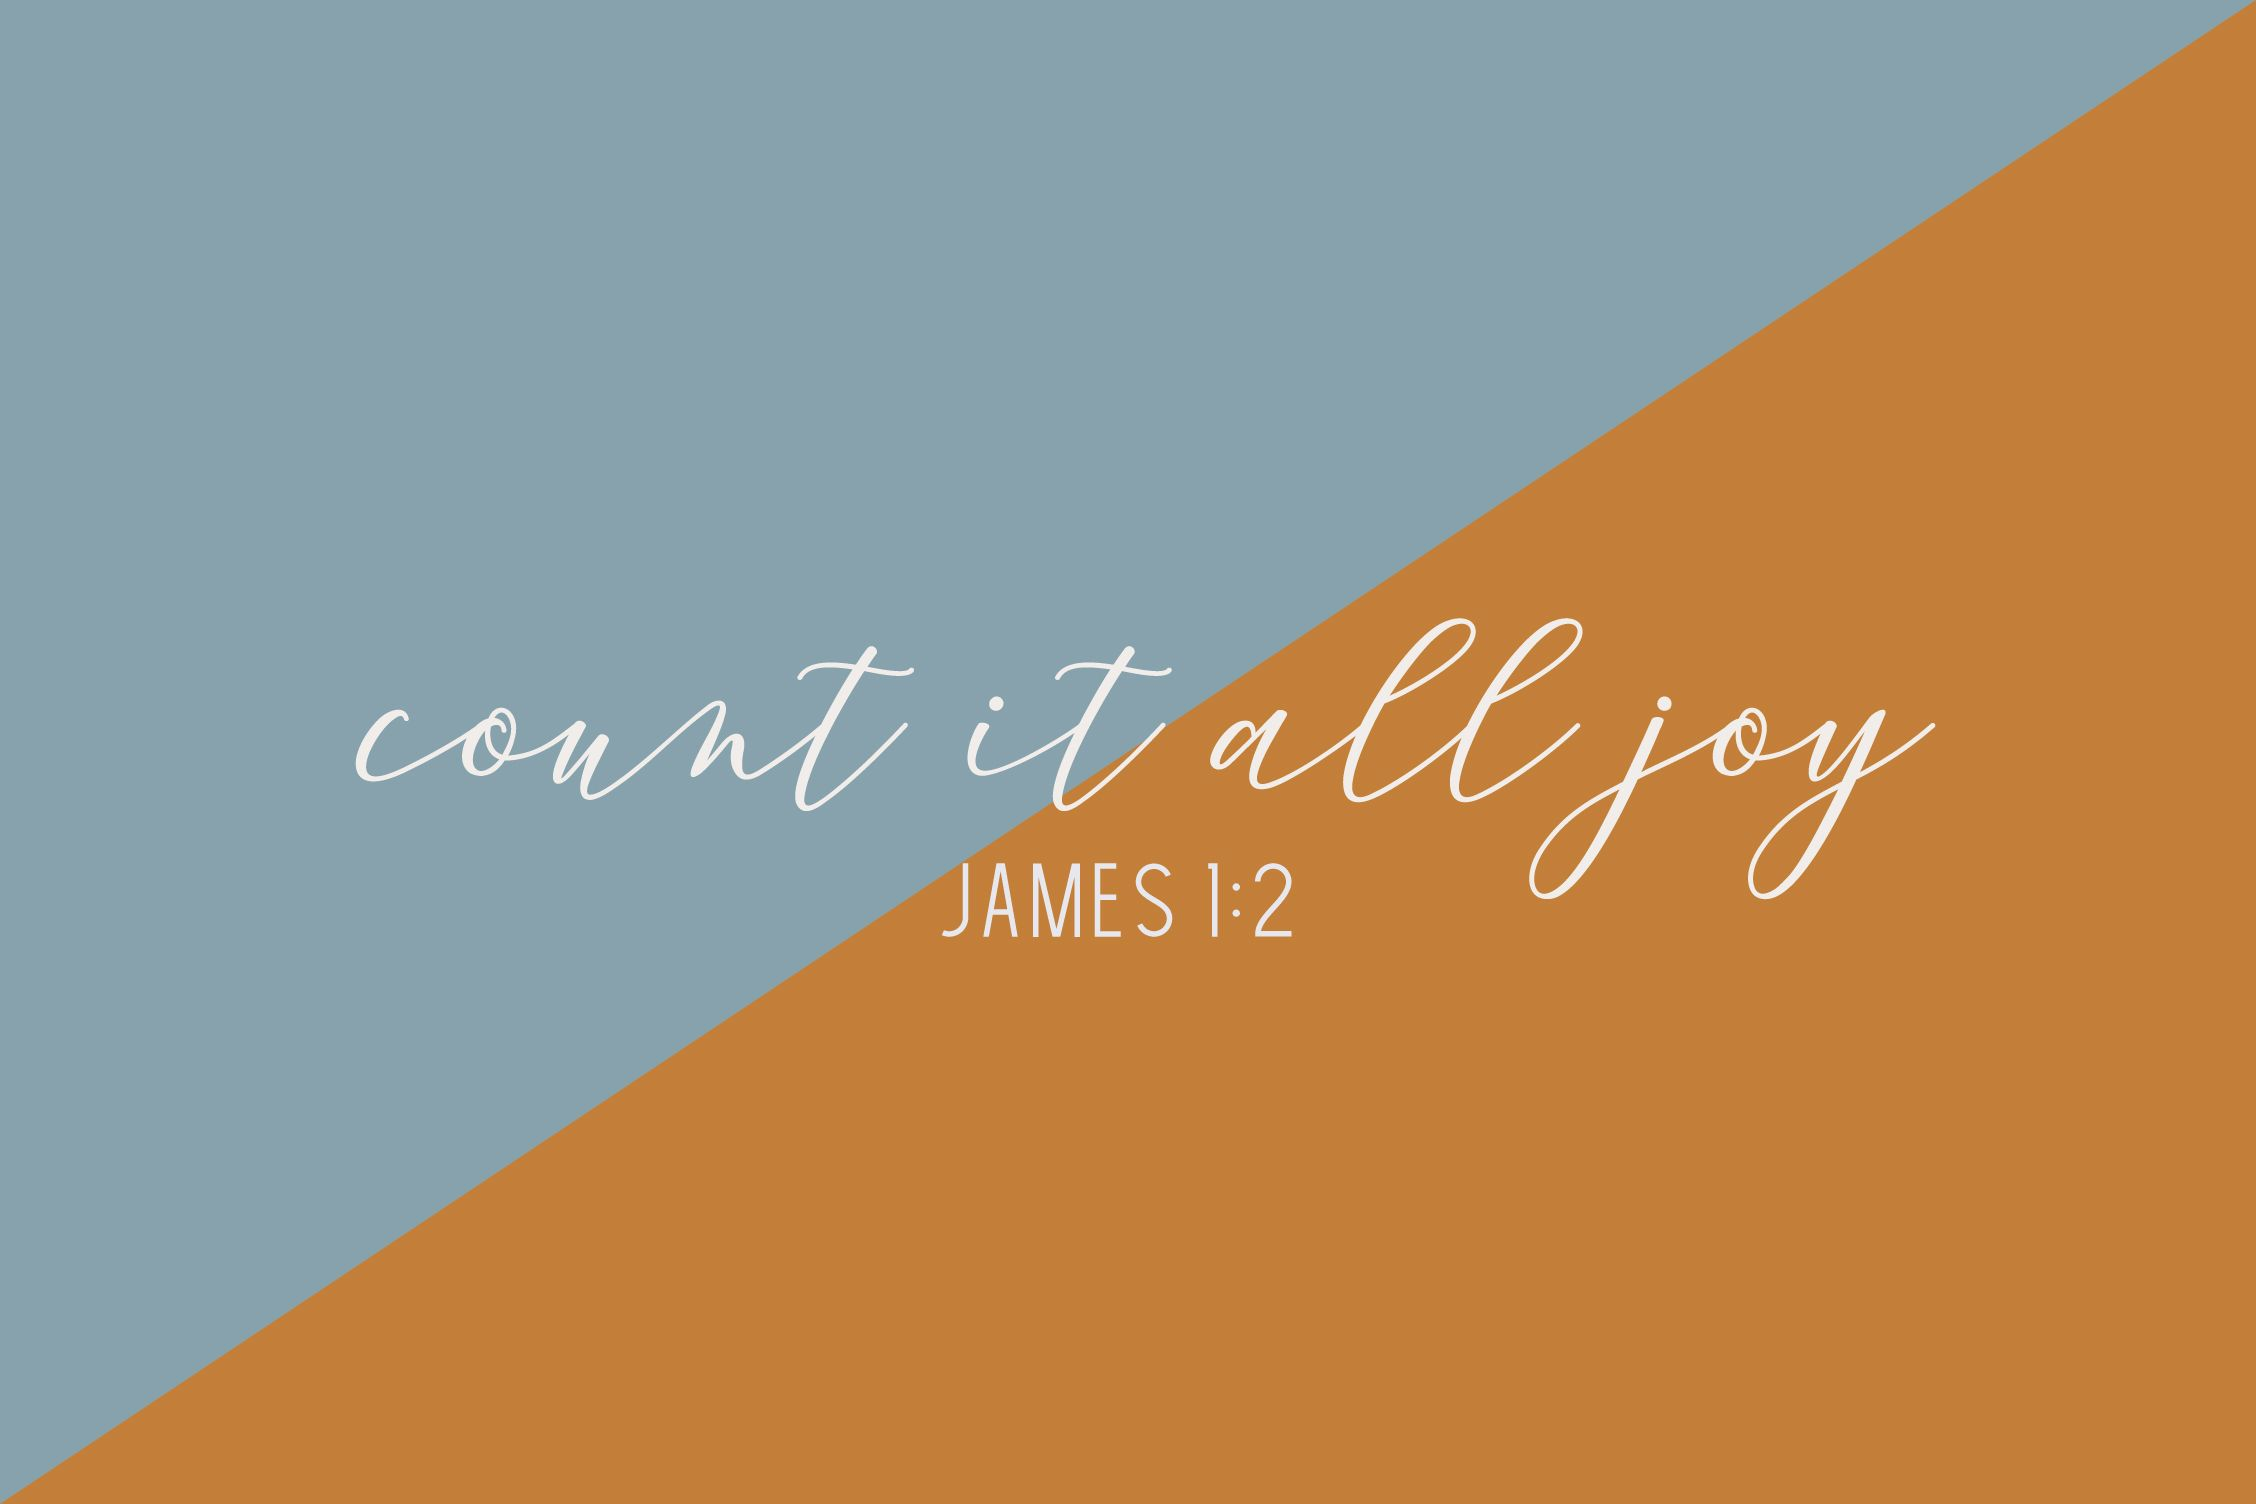 Bible Verse Desktop Wallpaper Em Mz Bible Verse Desktop Wallpaper Laptop Wallpaper Quotes Bible Verse Wallpaper